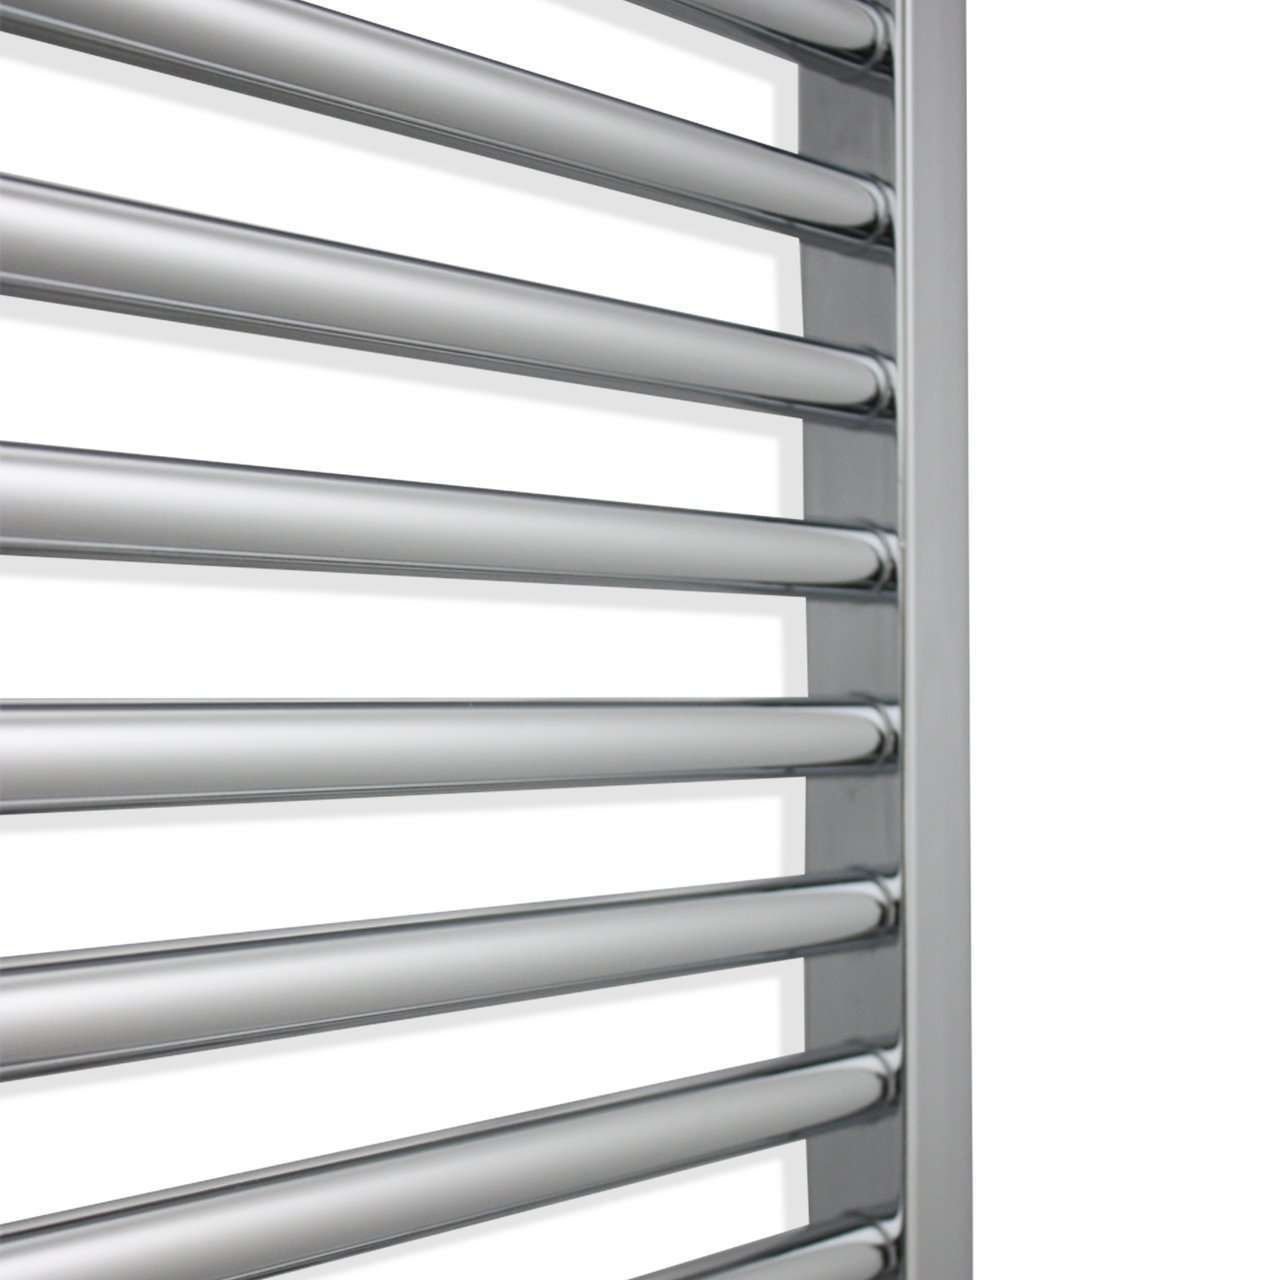 700mm Wide 1700mm High Flat Chrome Heated Towel Rail Radiator HTR